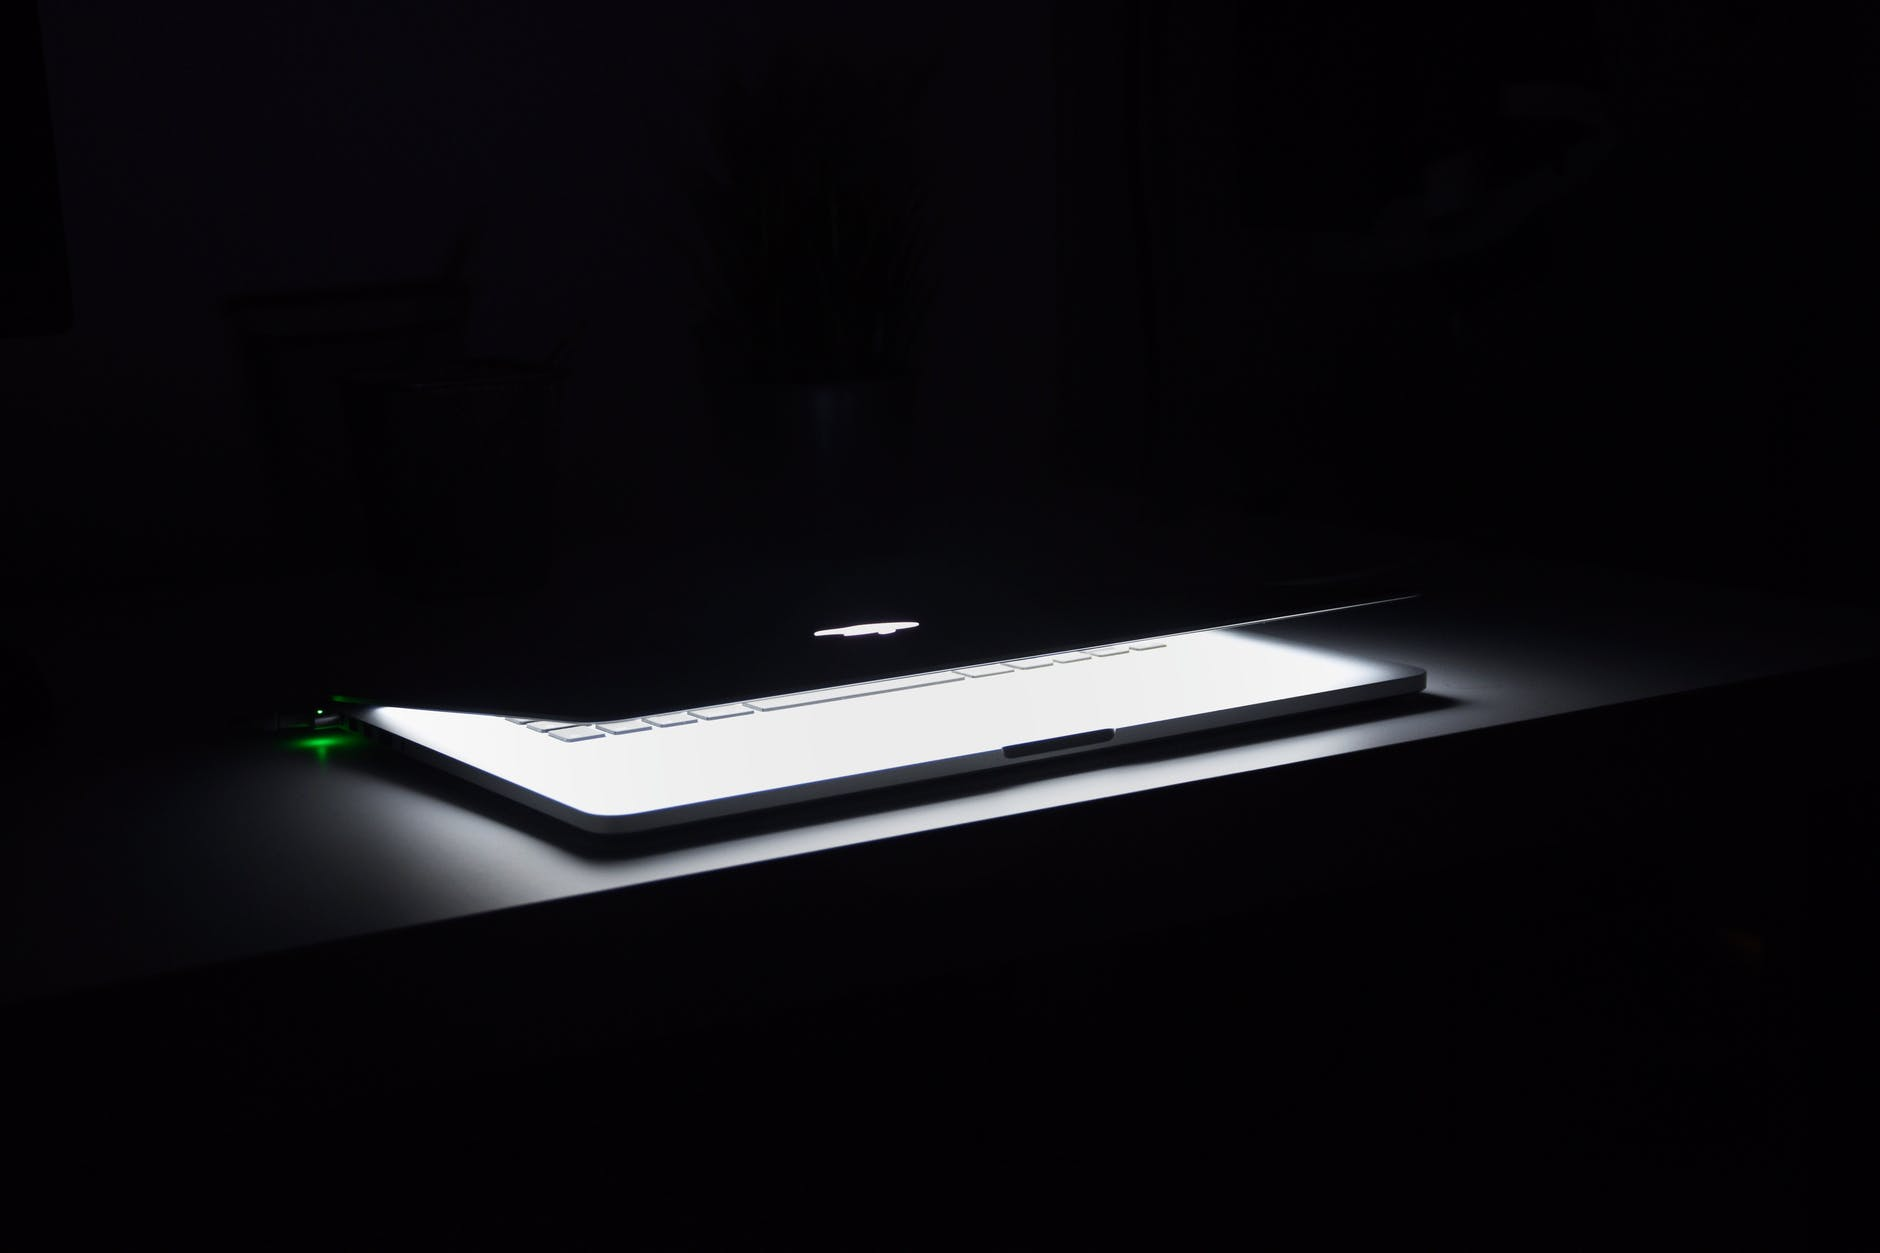 photography of macbook half opened on white wooden surface